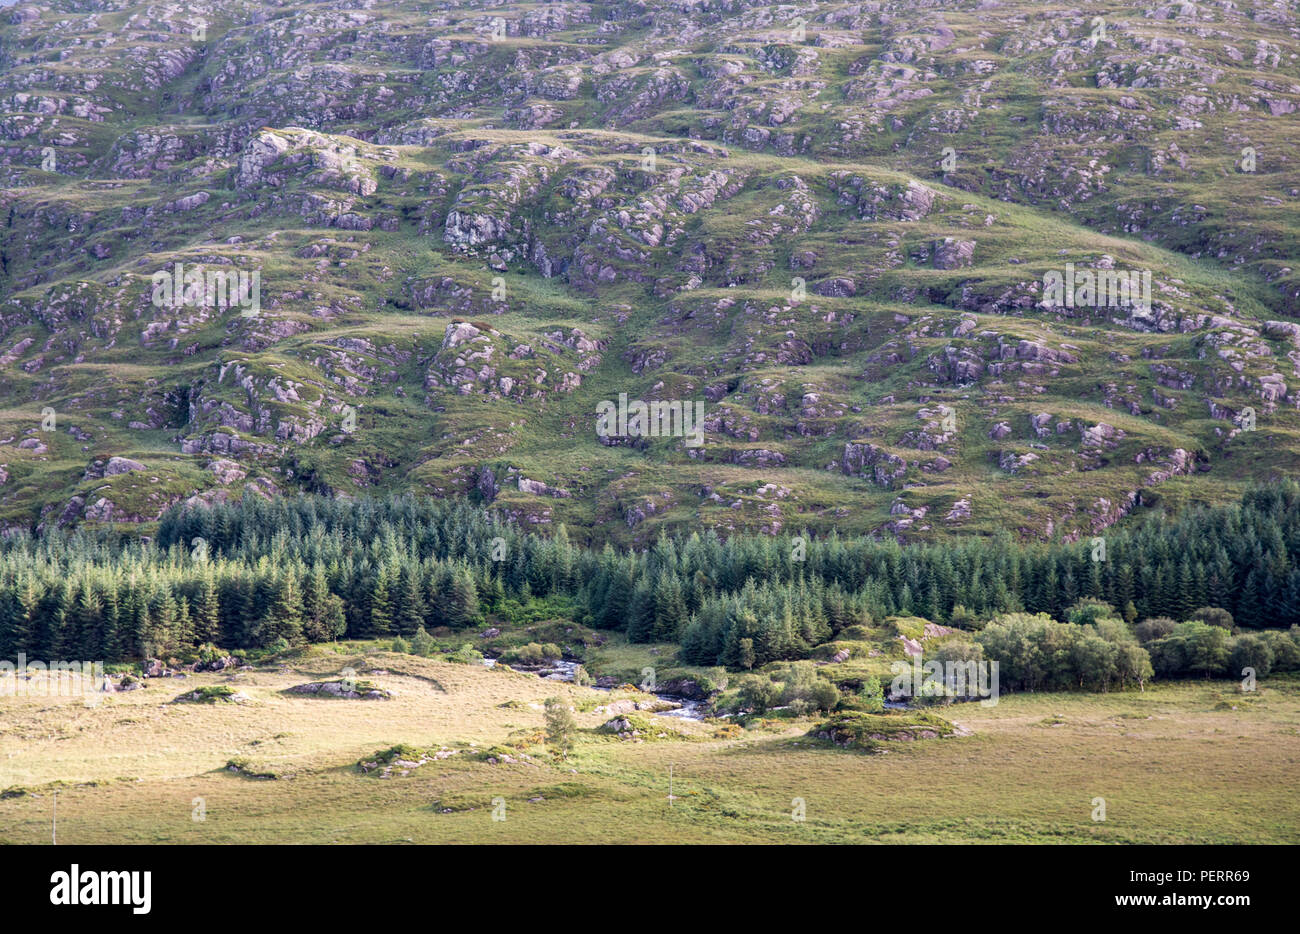 Forestry plantation in the valley floor of the Black Valley, nestled under the Macgillycuddy's Reeks mountains of Ireland's County Kerry. - Stock Image